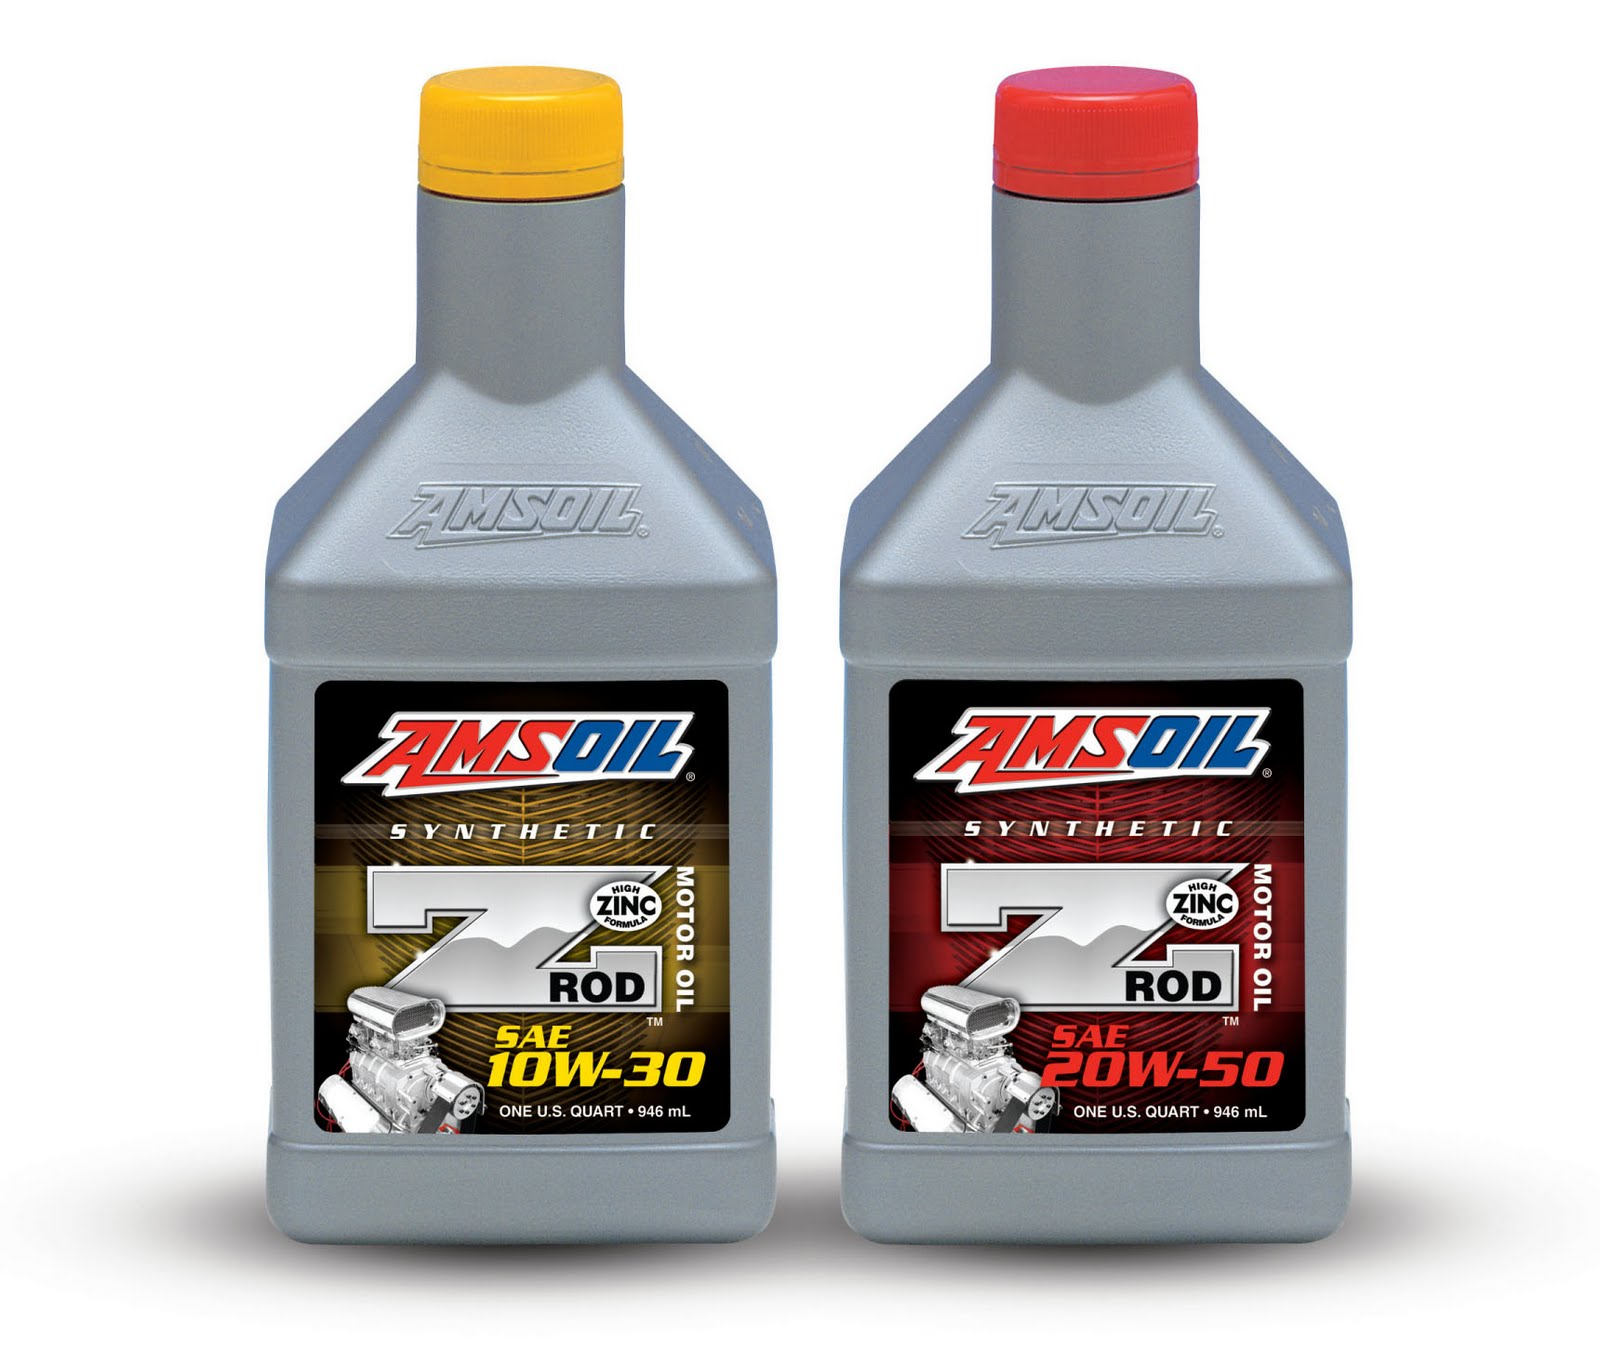 Amsoil High Zinc Synthetic Motor Oil